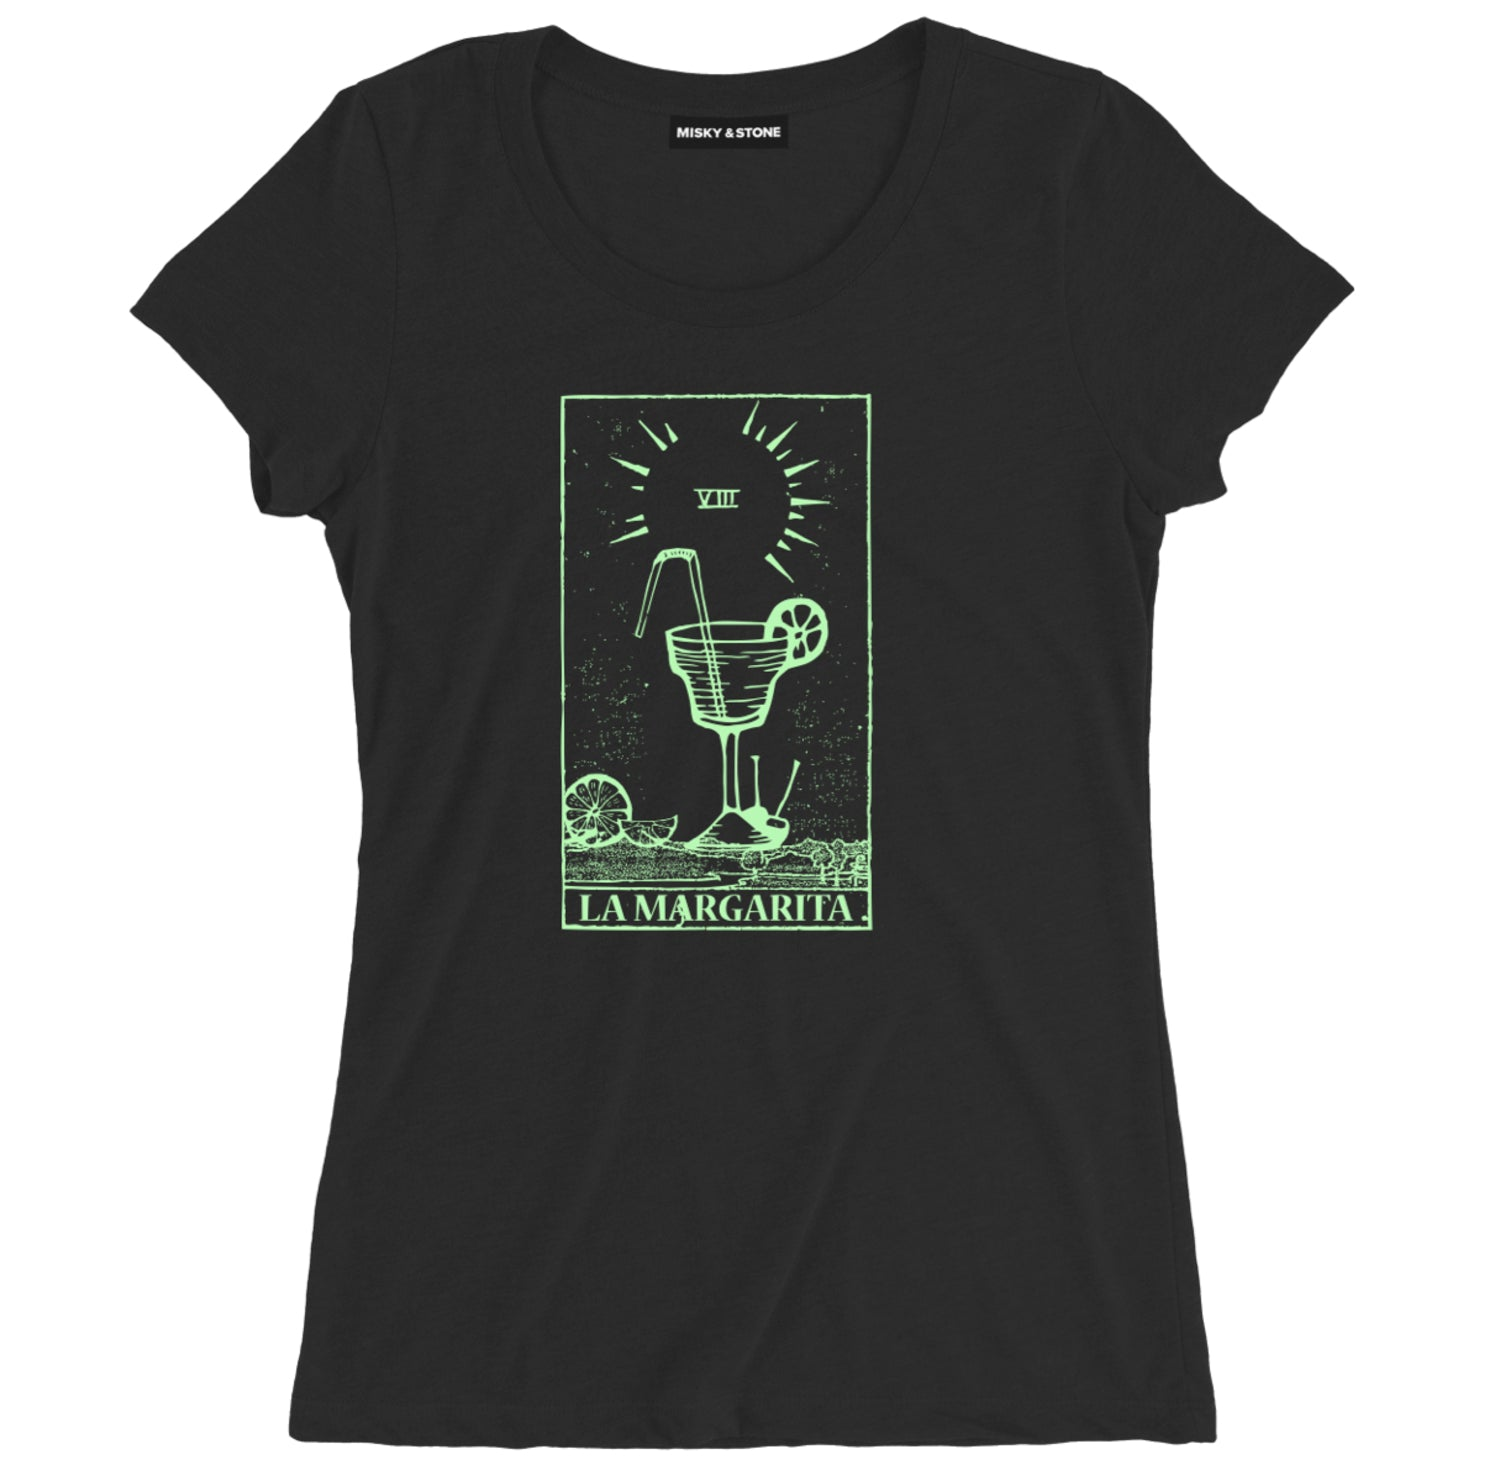 La Margarita Funny Drinks Womens Tee Shirt